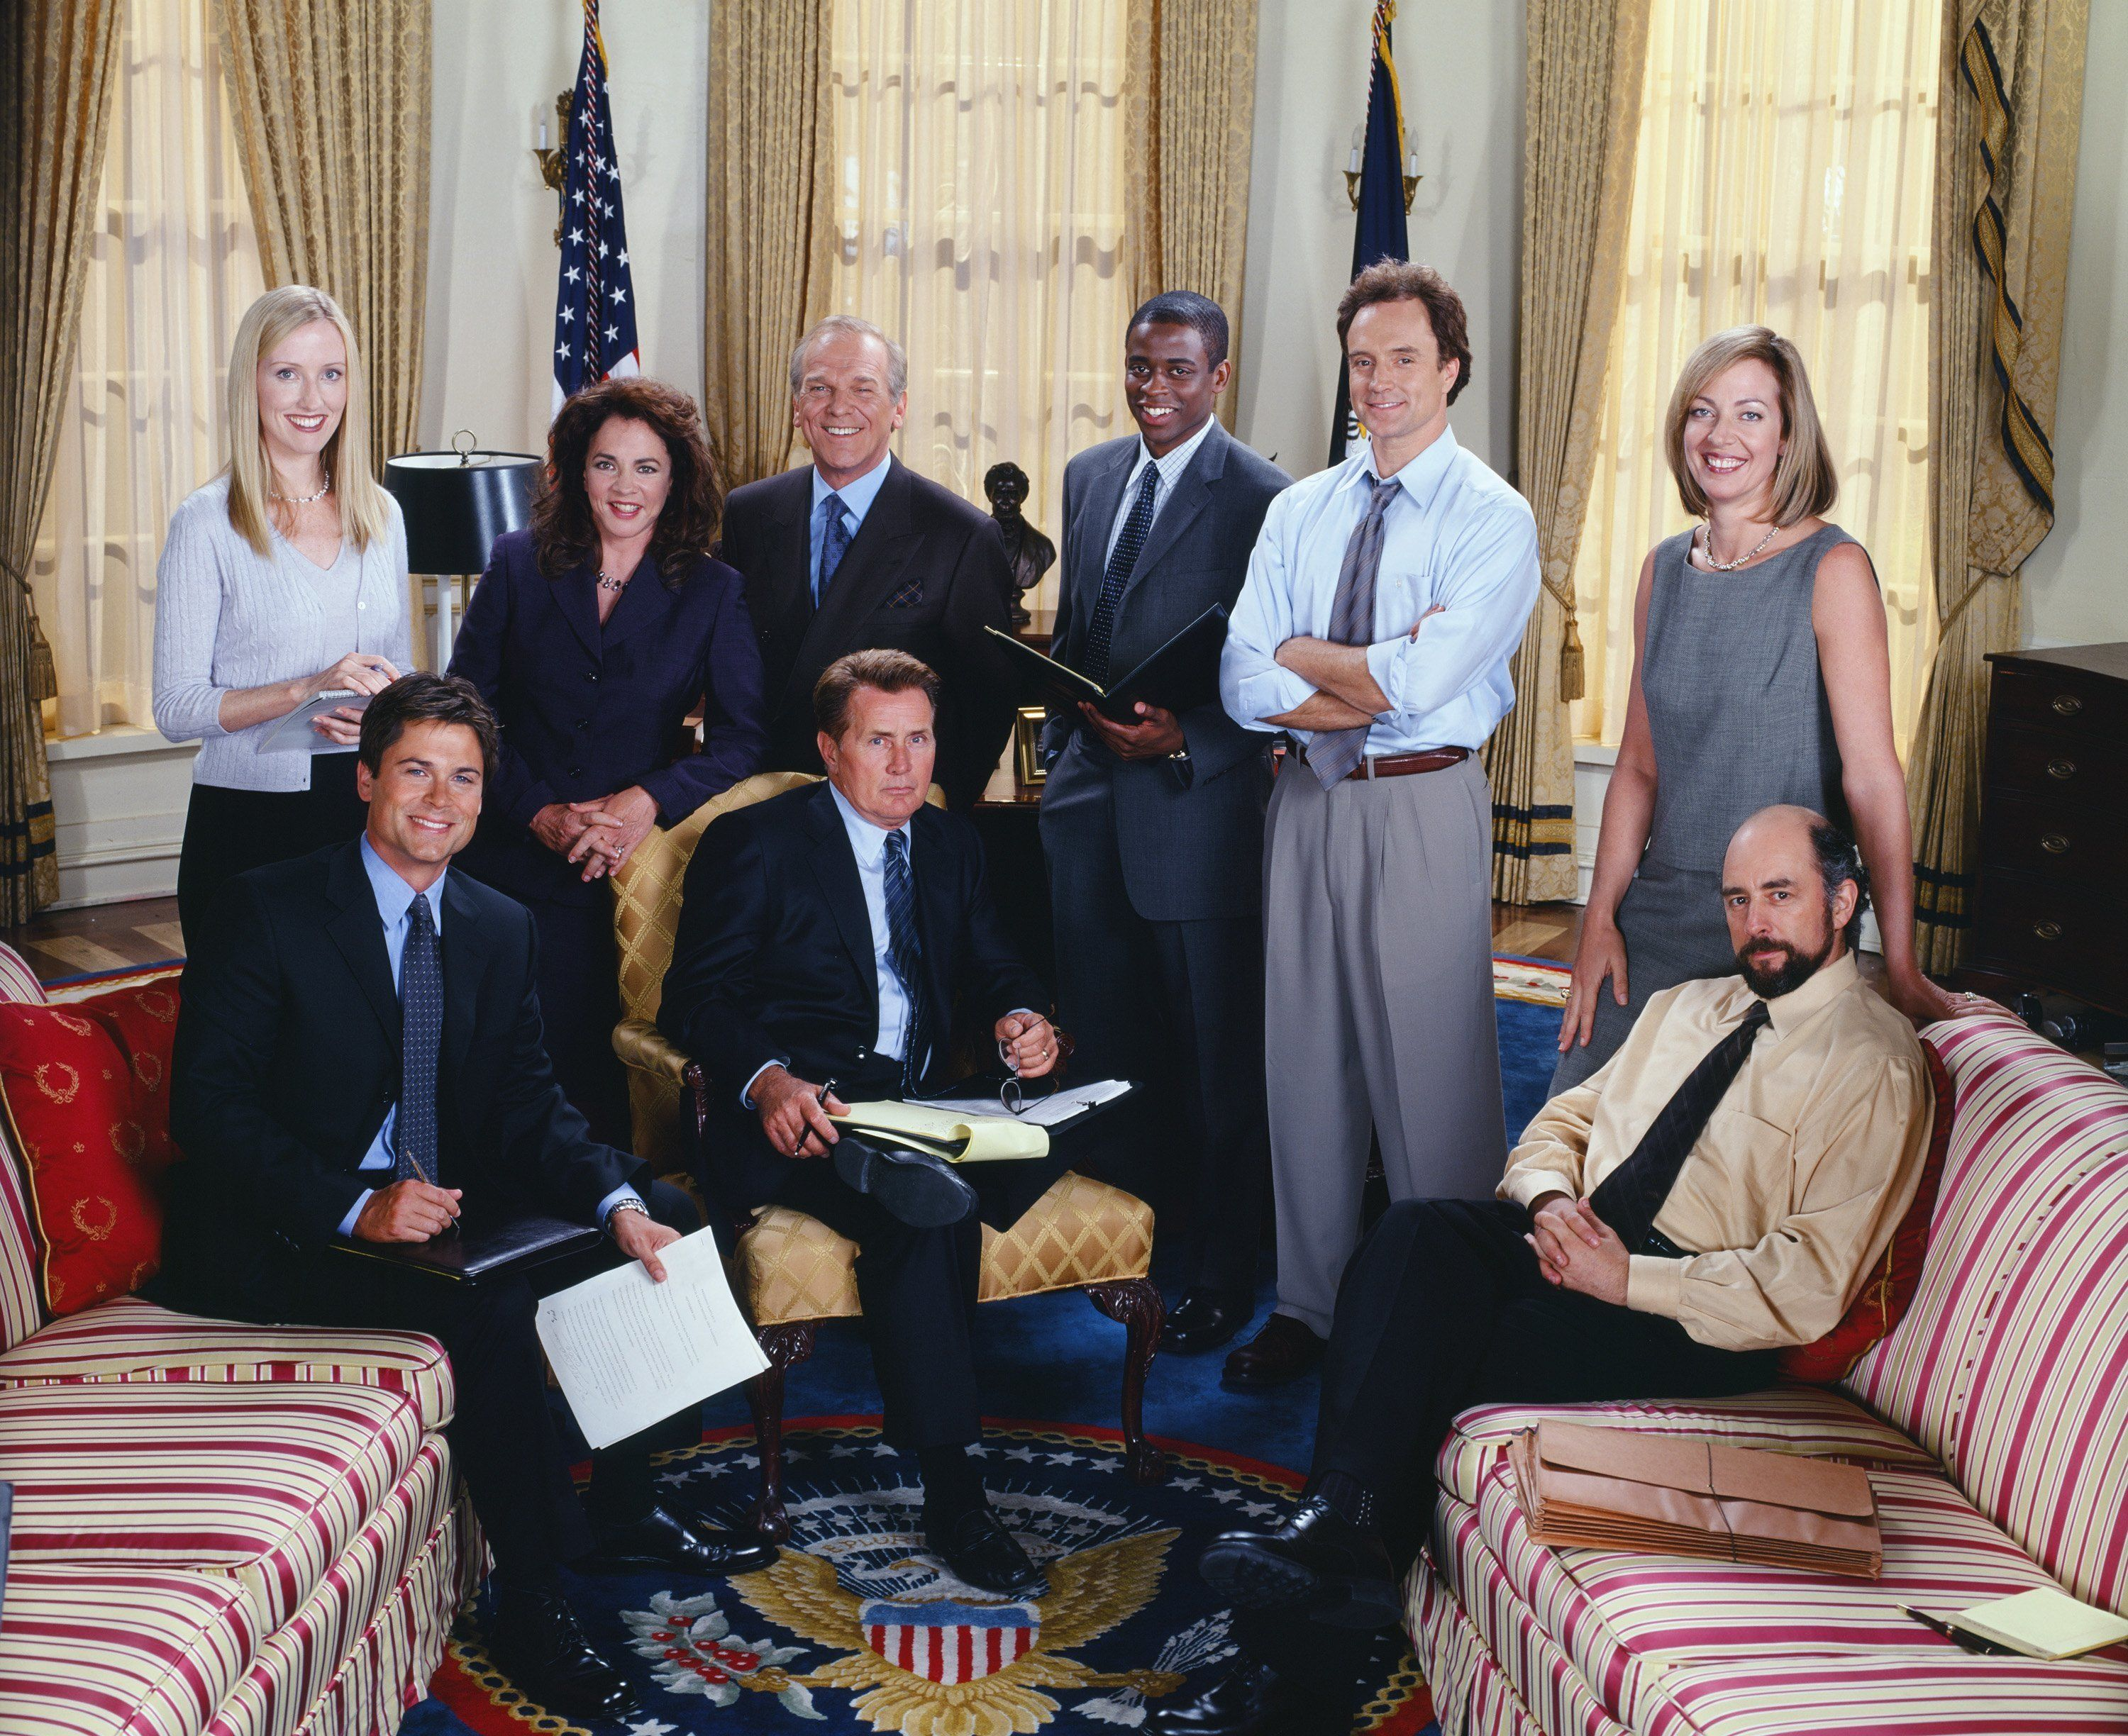 THE WEST WING -- SEASON 3 -- Pictured: (l-r) Janel Moloney as Donna Moss, Rob Lowe as Sam Seaborn, Stockard Channing as Abbey Bartlet, Martin Sheen as President Josiah 'Jed' Bartlet, John Spencer as Leo McGarry, Dule Hill as Charlie Young, Bradley Whitford as Josh Lyman, Allison Janney as Claudia Jean 'C.J.' Cregg, Richard Schiff as Toby Ziegler -- Photo by: James Sorensen/NBCU Photo Bank